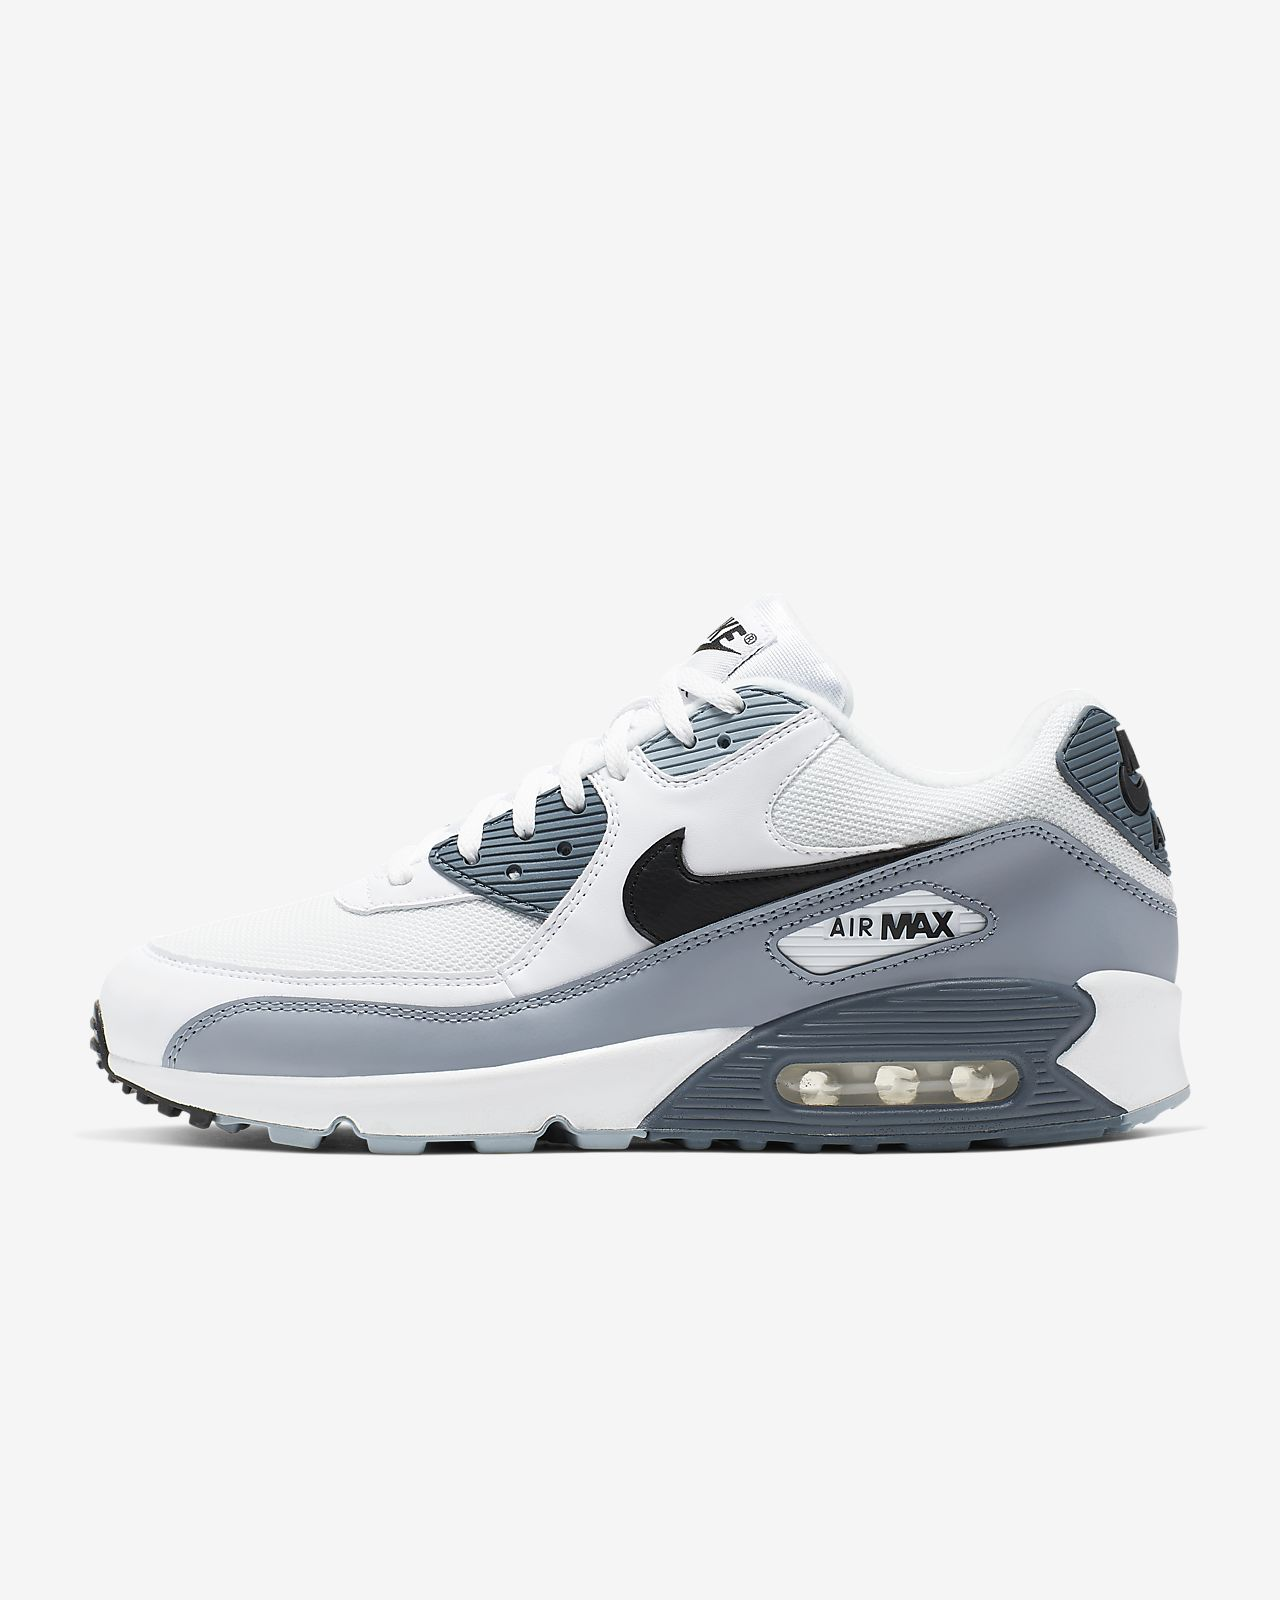 separation shoes d7a98 fecba ... Nike Air Max 90 Essential Men s Shoe